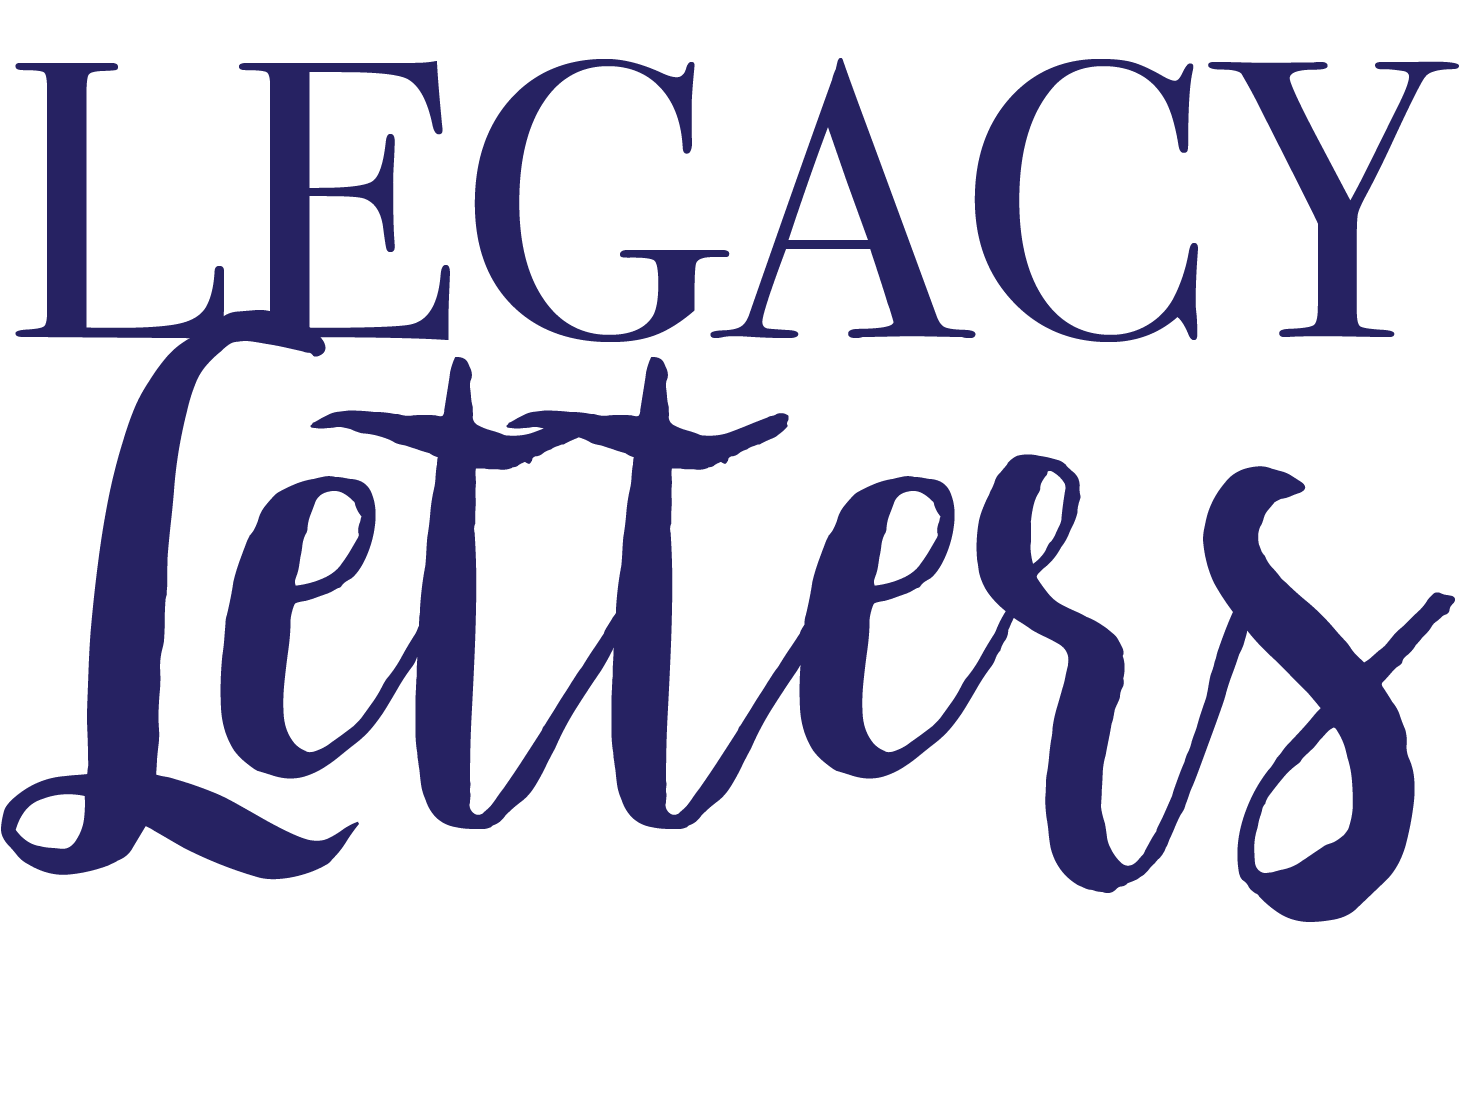 legacy letters title.png